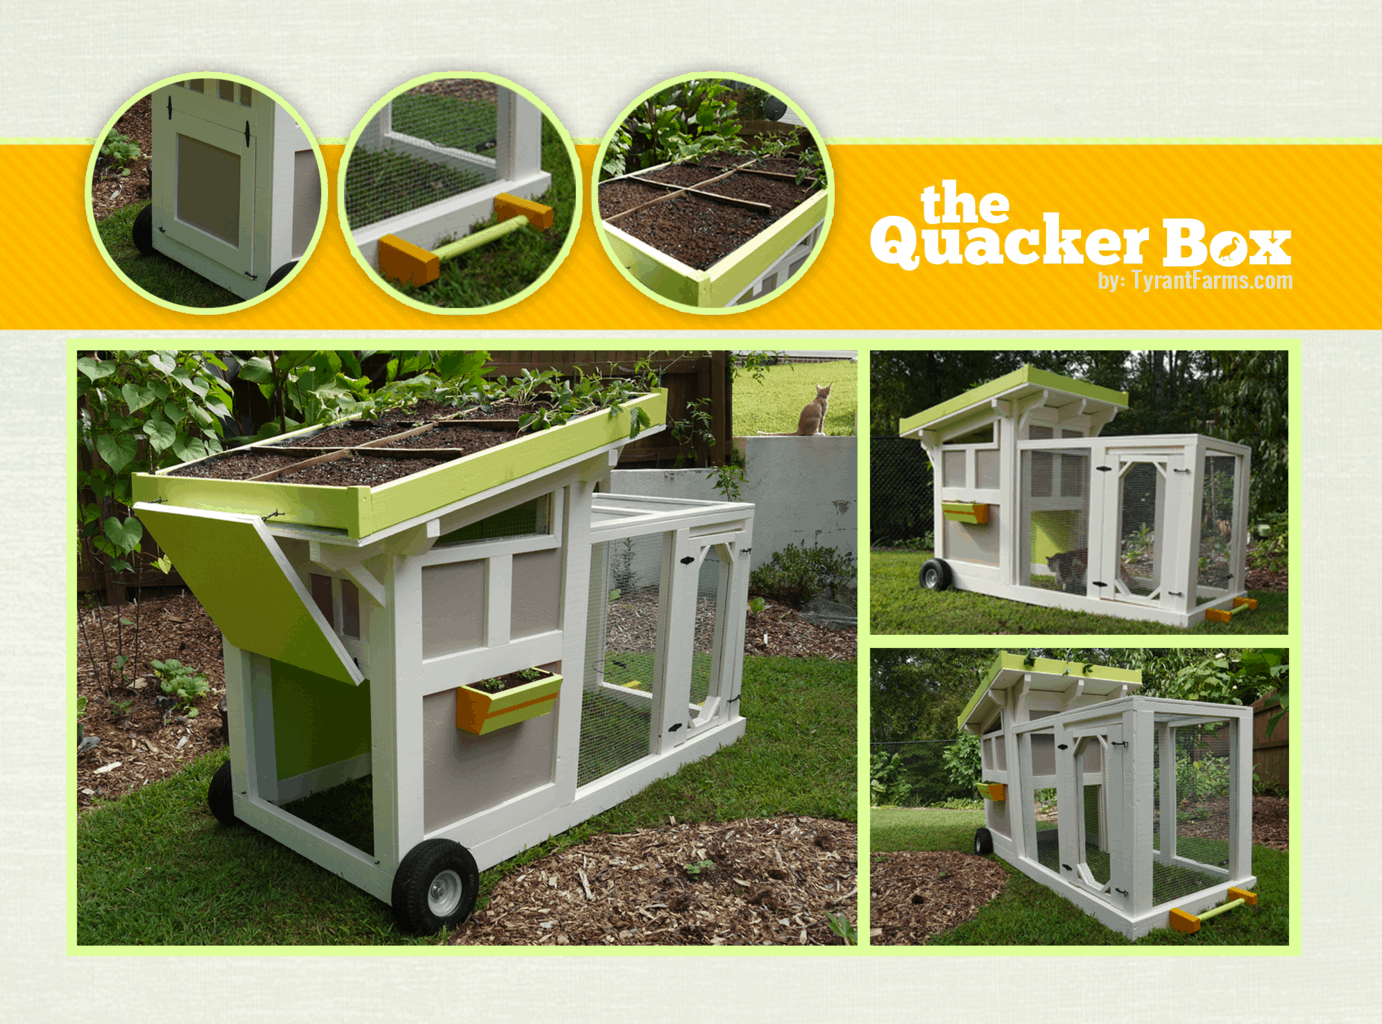 This Is The Quacker Box We Made For Our Ducks. If You Want To Make